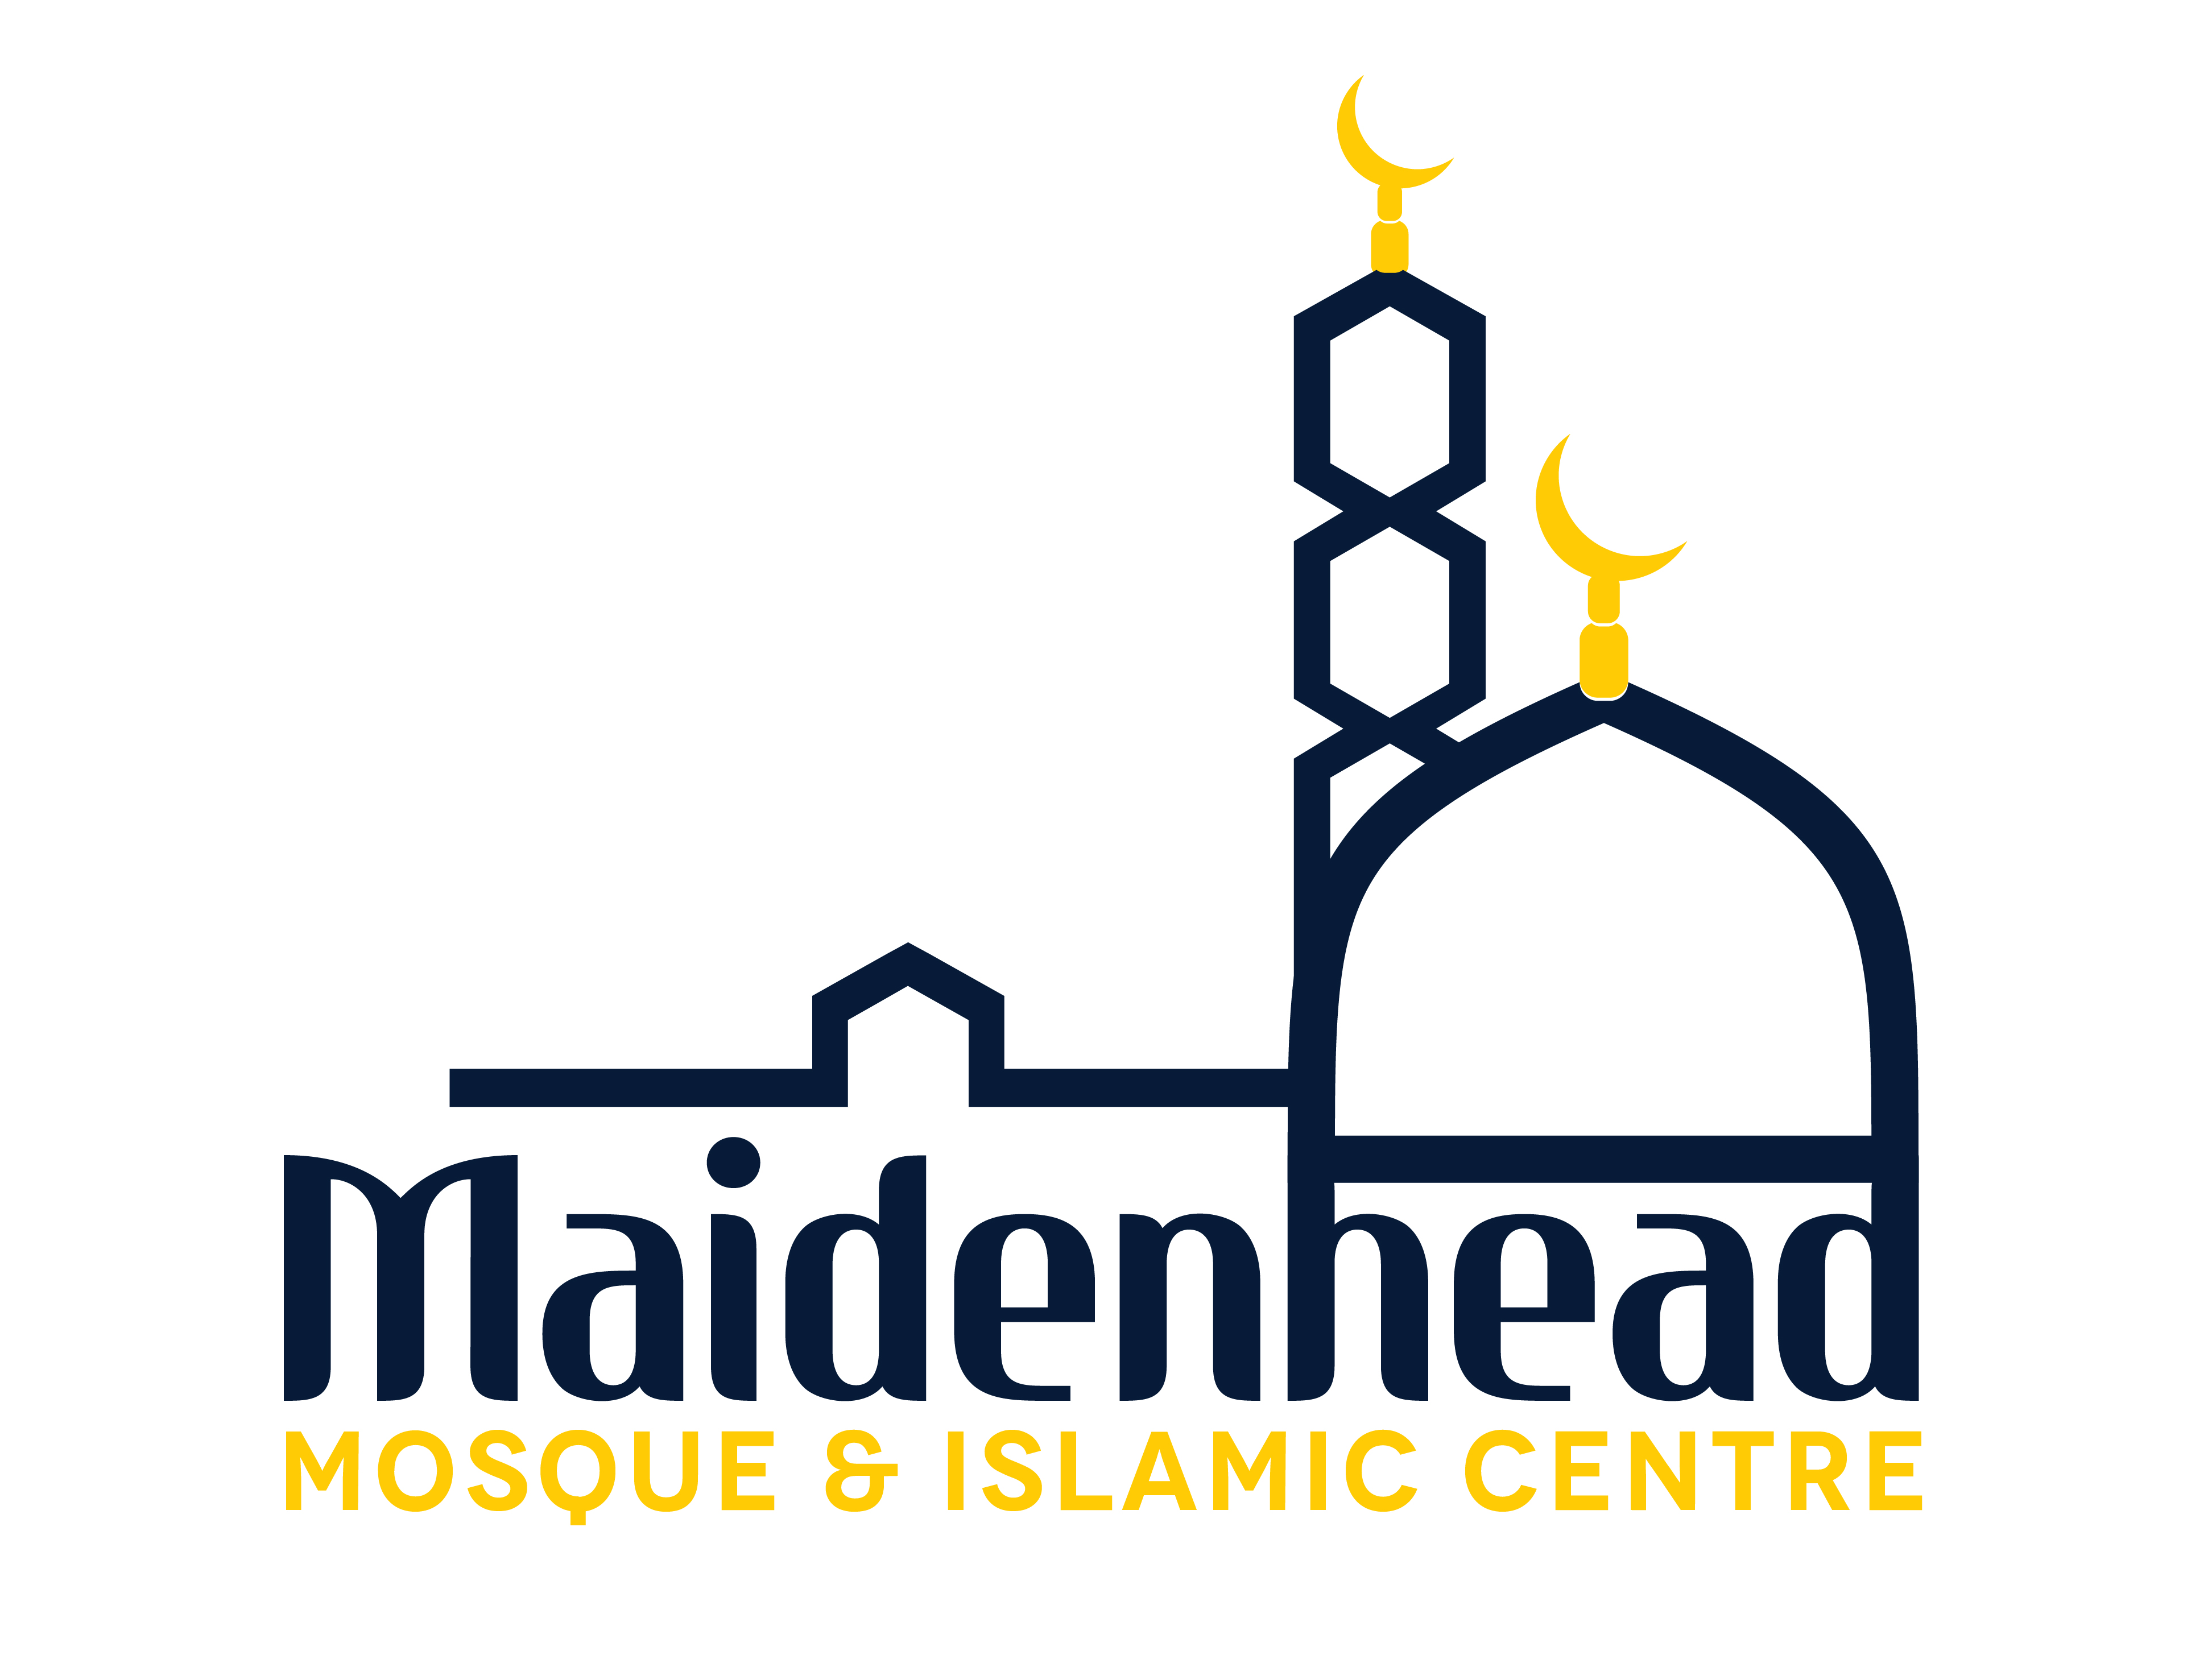 Maidenhead Mosque & Islamic Centre - Mosque & Islamic Centre